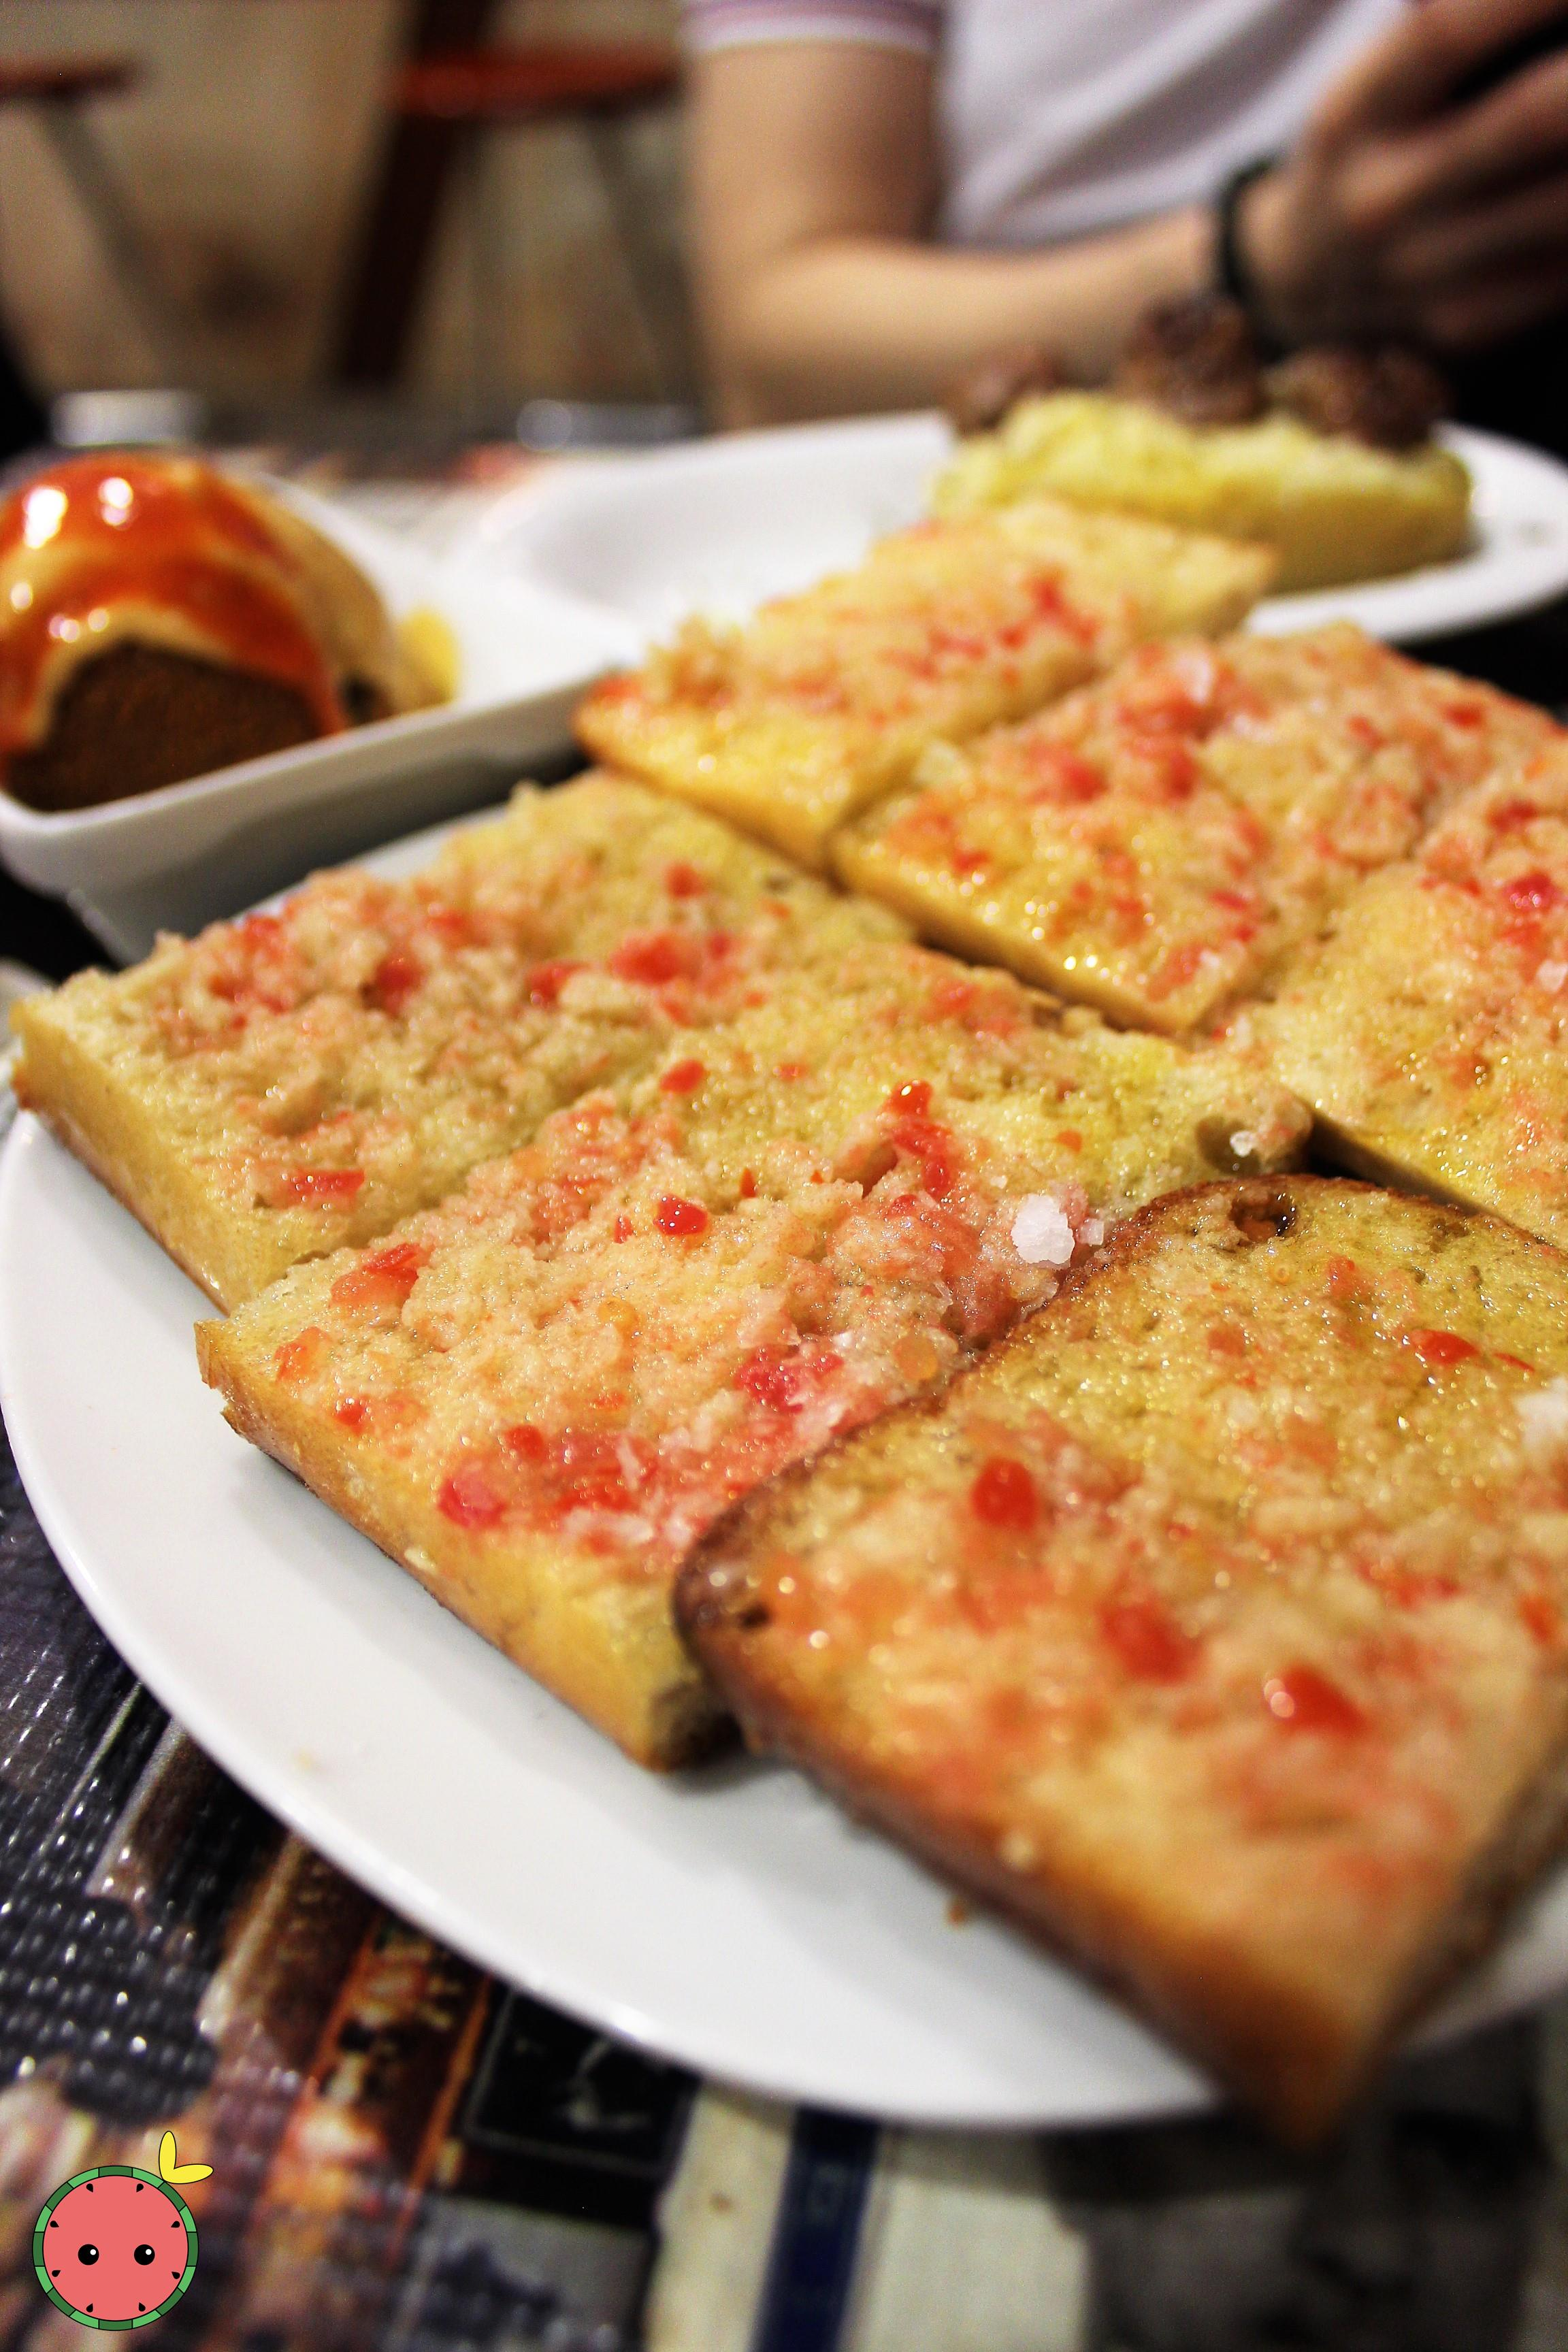 Toasted Bread with Tomato